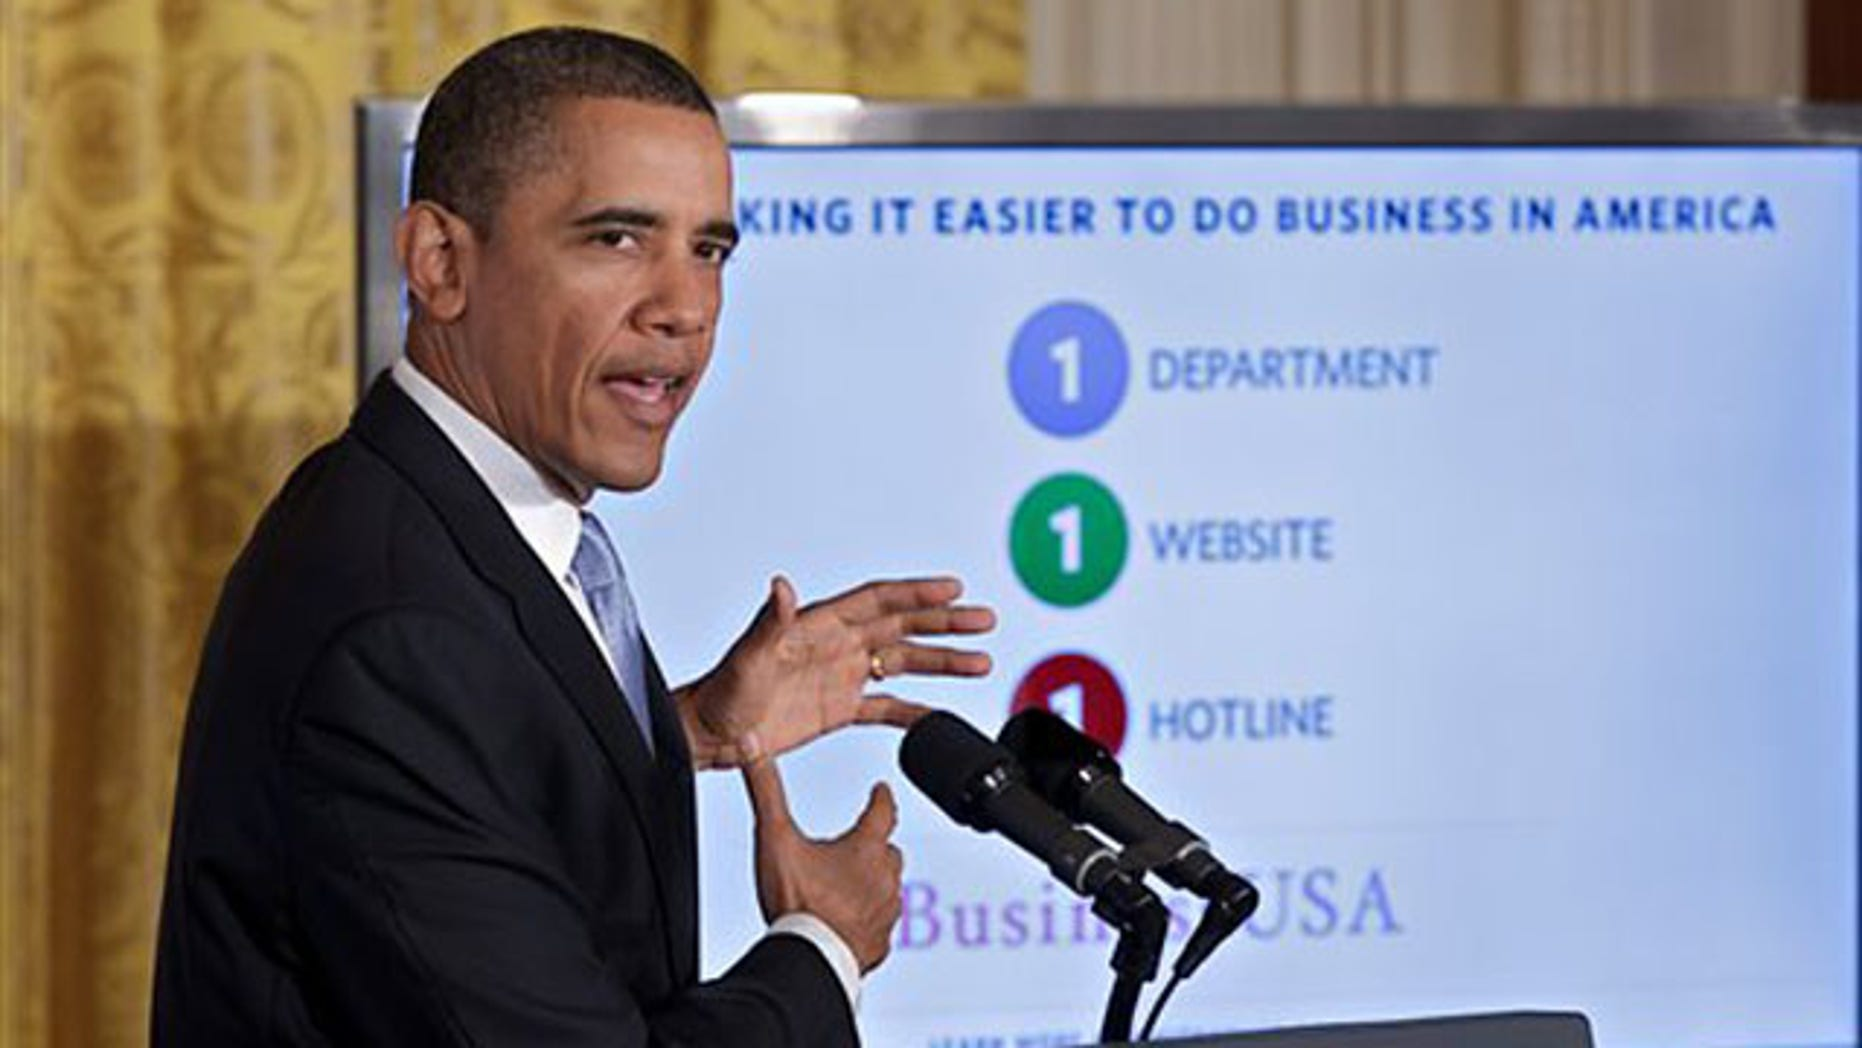 Jan. 13, 2012: President Obama speaks about government reform at the White House in Washington, D.C.